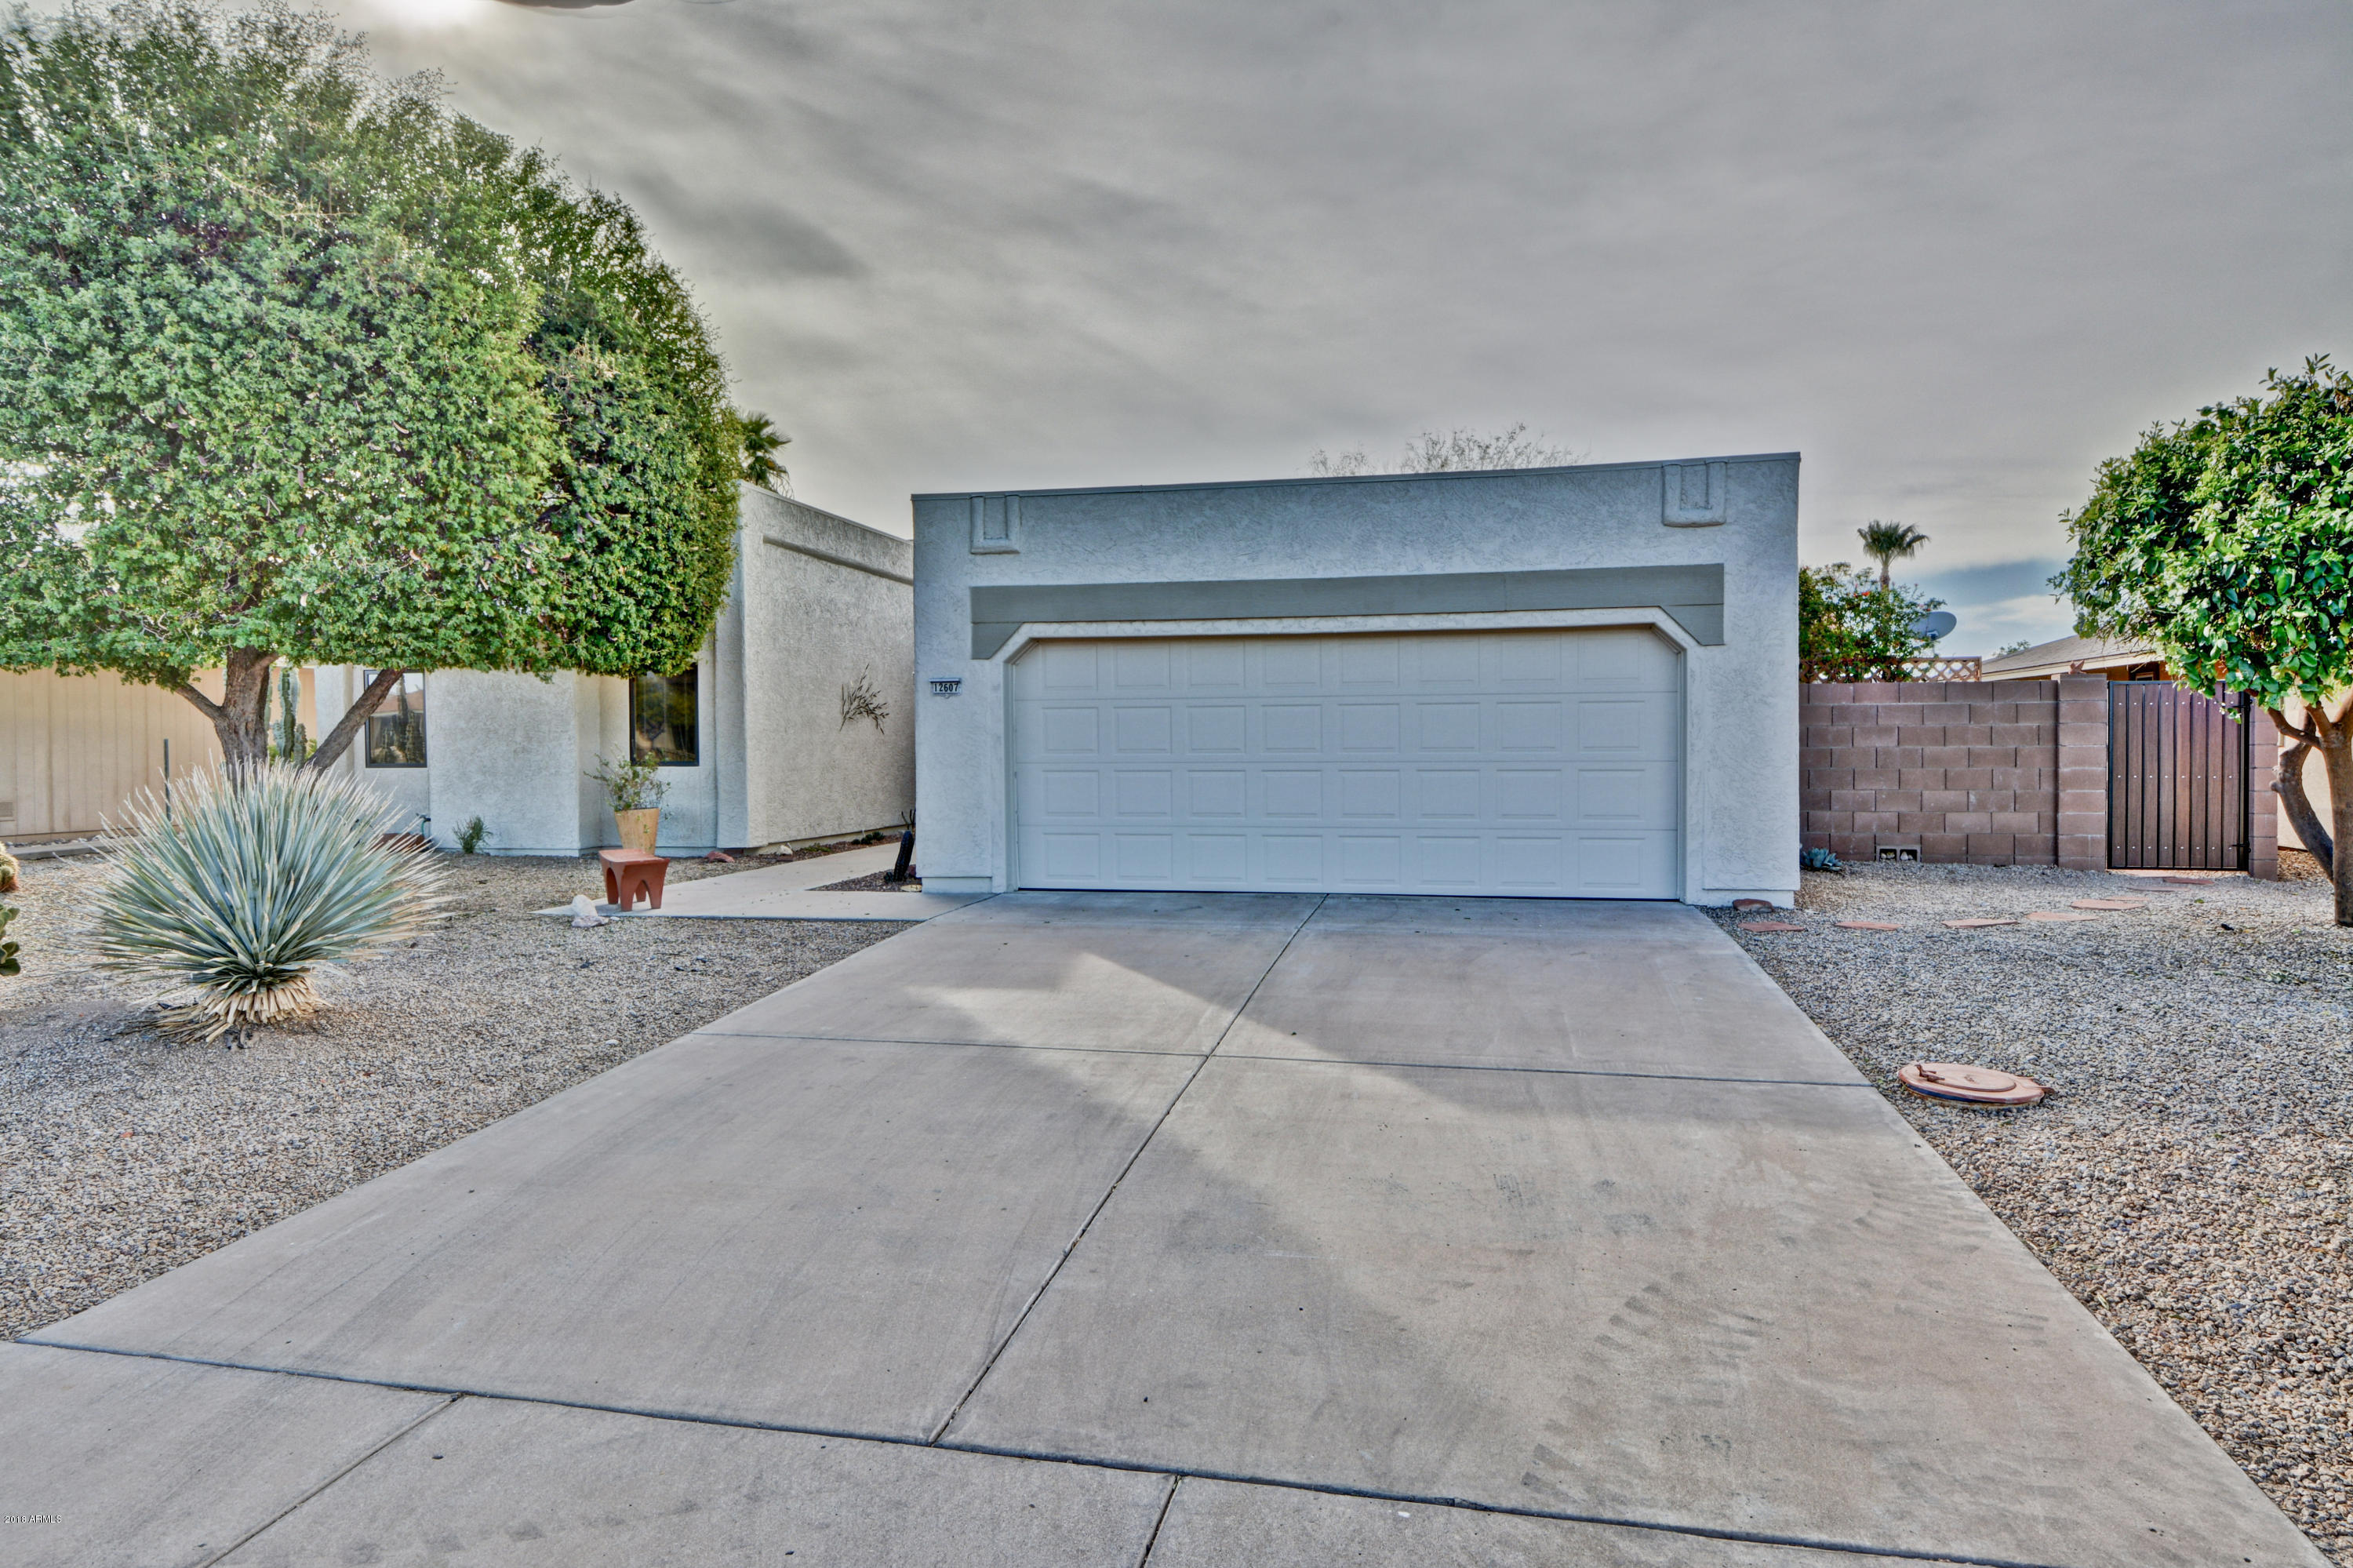 12607 W BONANZA DRIVE, SUN CITY WEST, AZ 85375